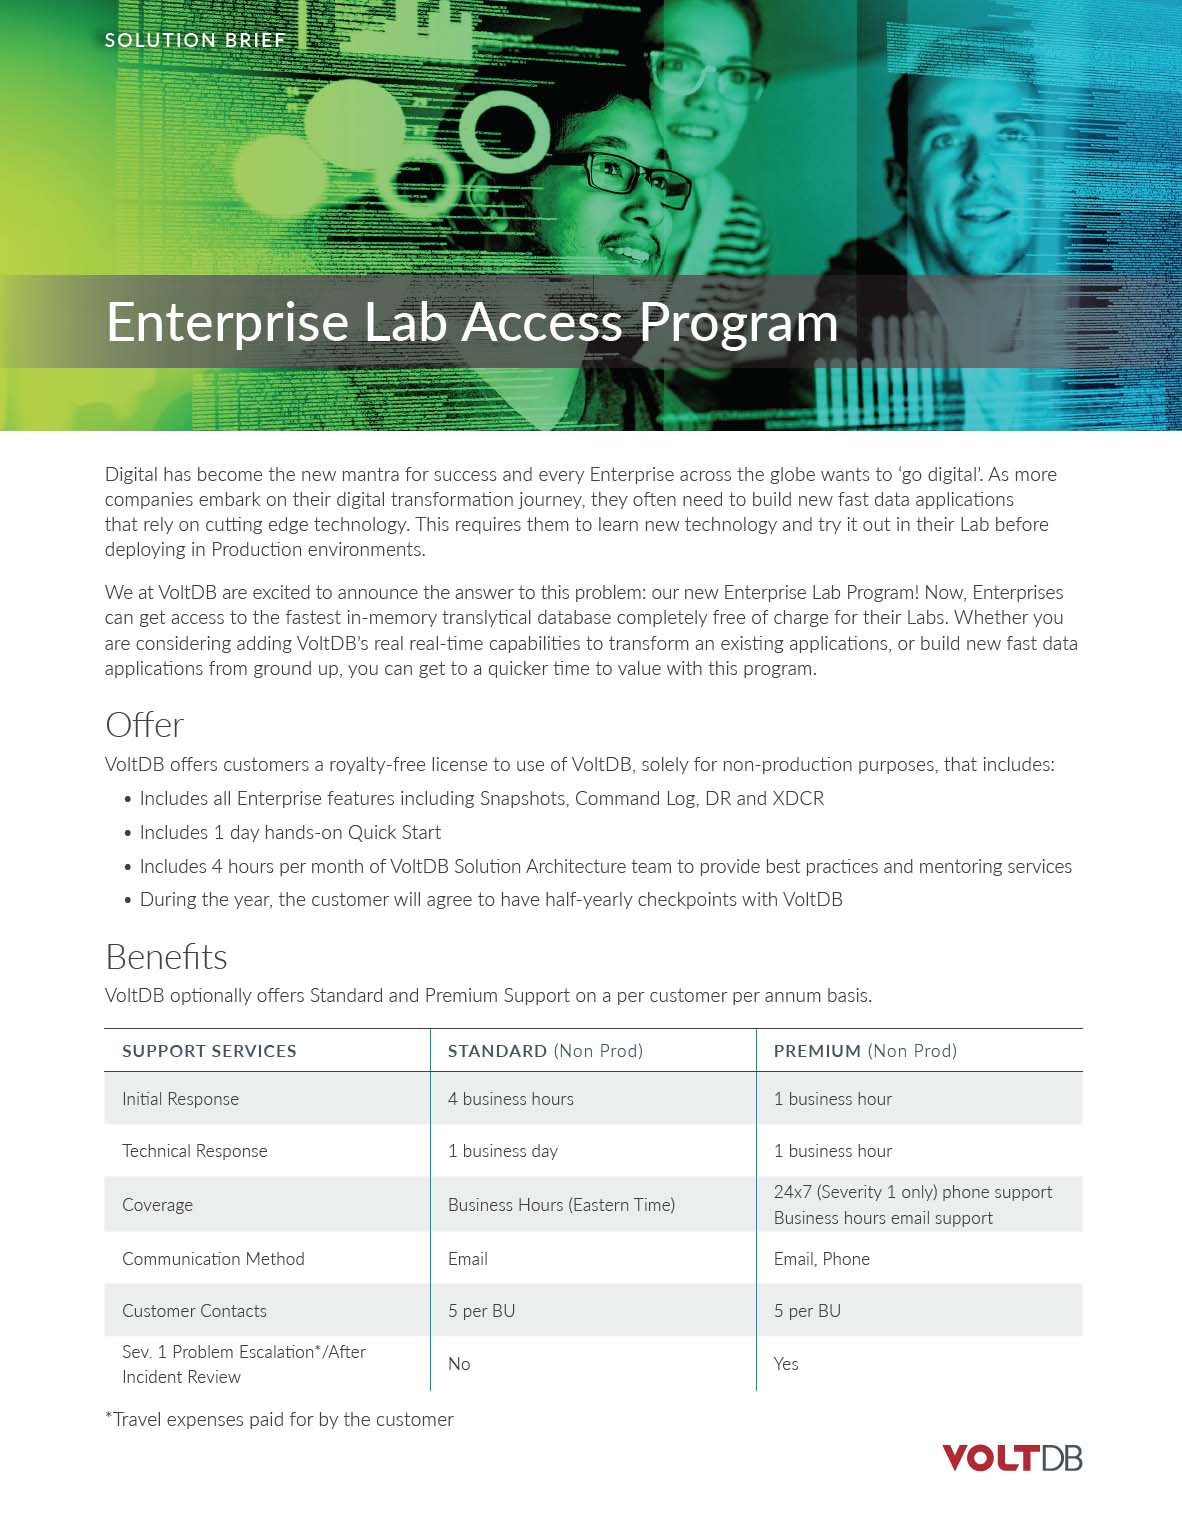 DataSheet: VoltDB Enterprise Lab Access Program